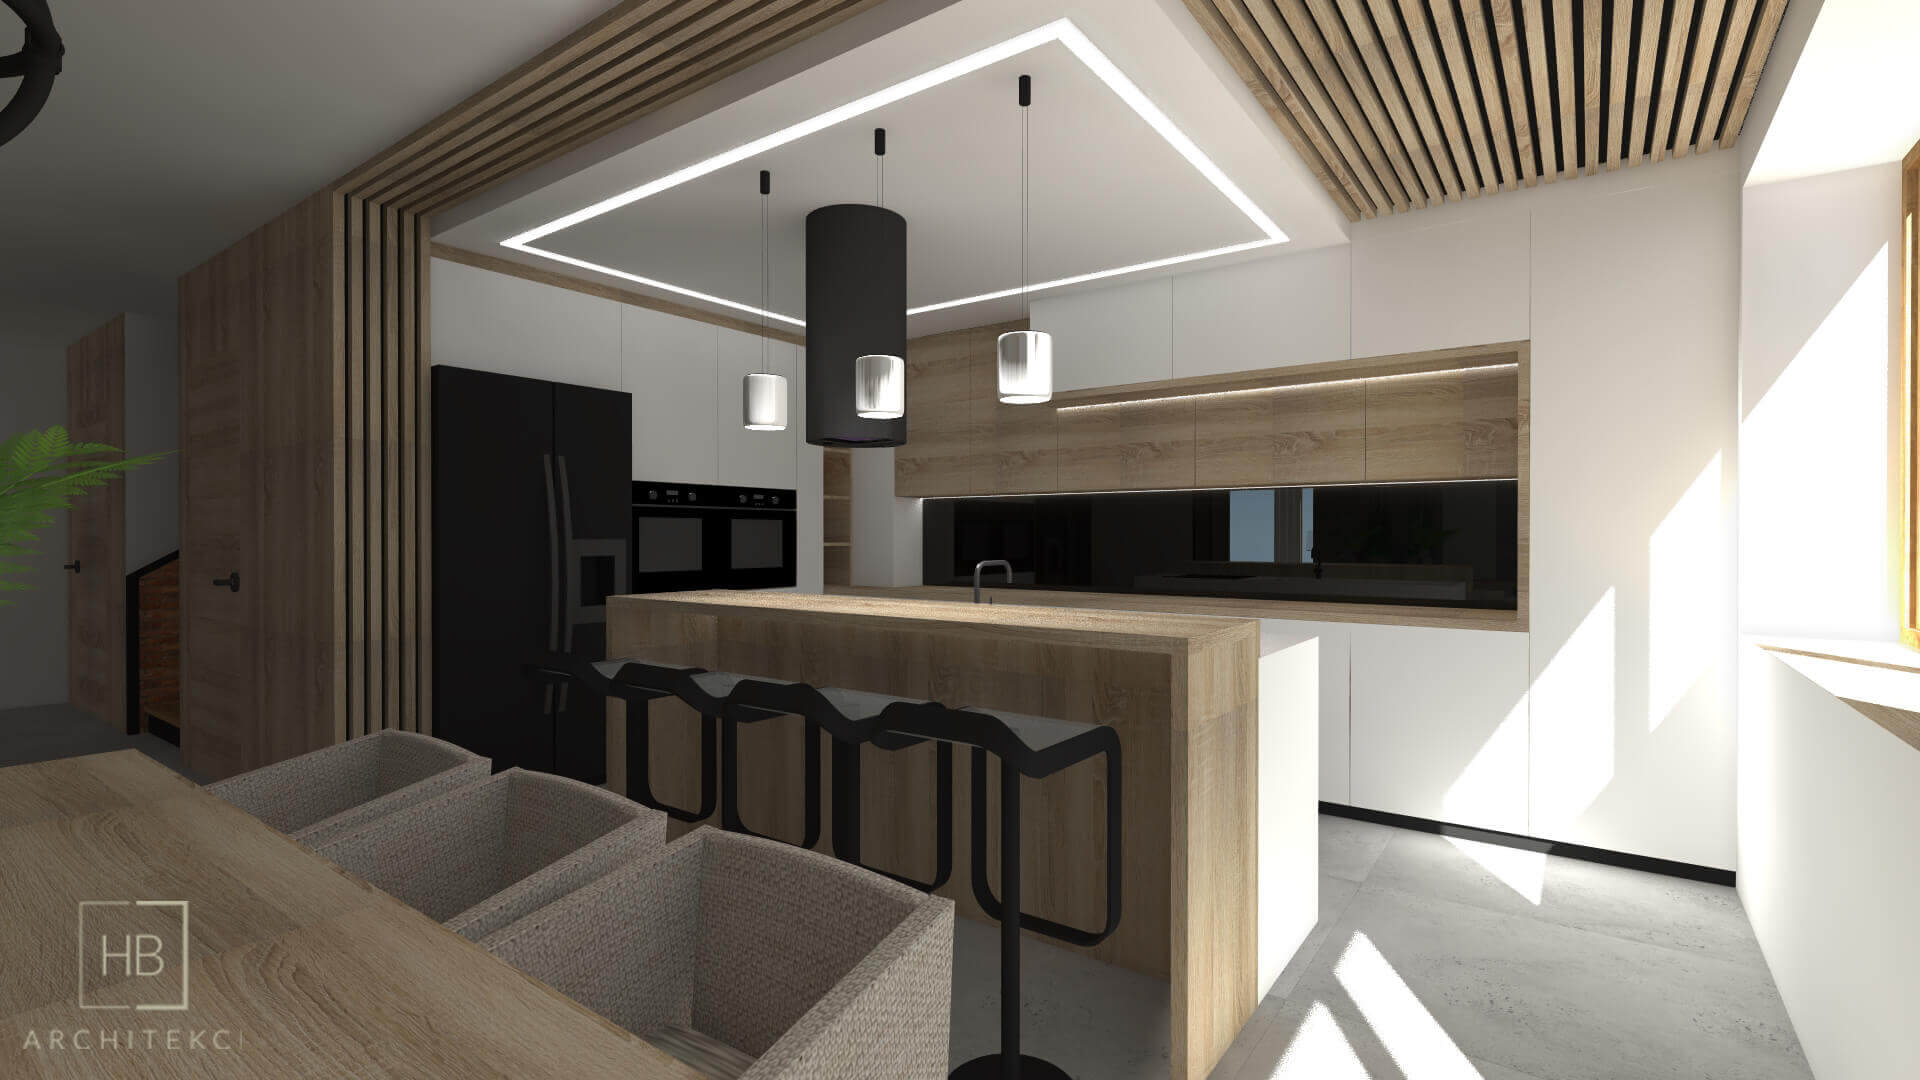 Led profiles in the kitchen